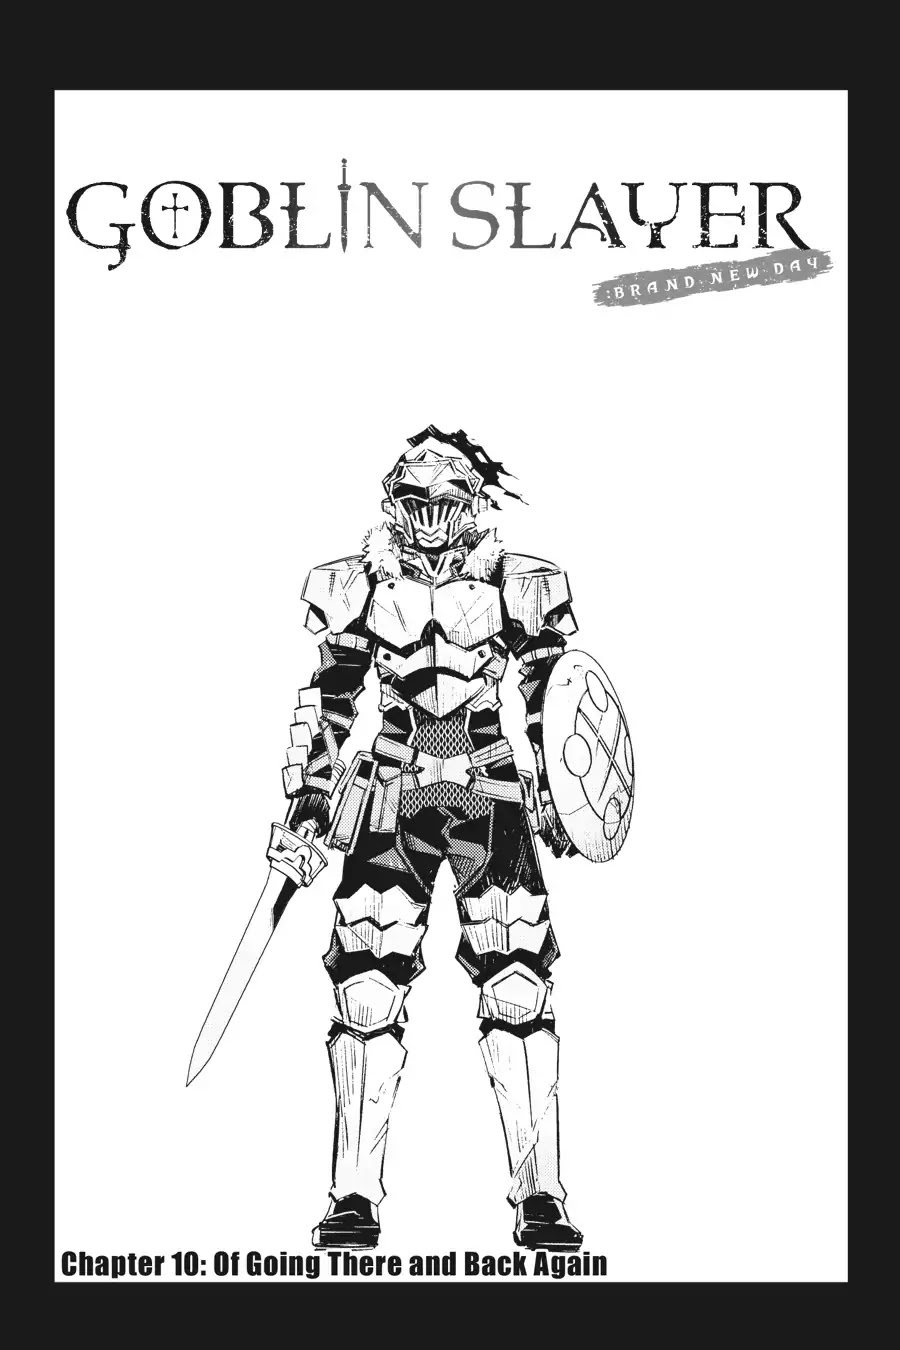 Goblin Slayer Brand New Day Chapter 10 Of Going There And Back Again End Page 2 Mangakakalot Com Goblin Brand New Day Slayer